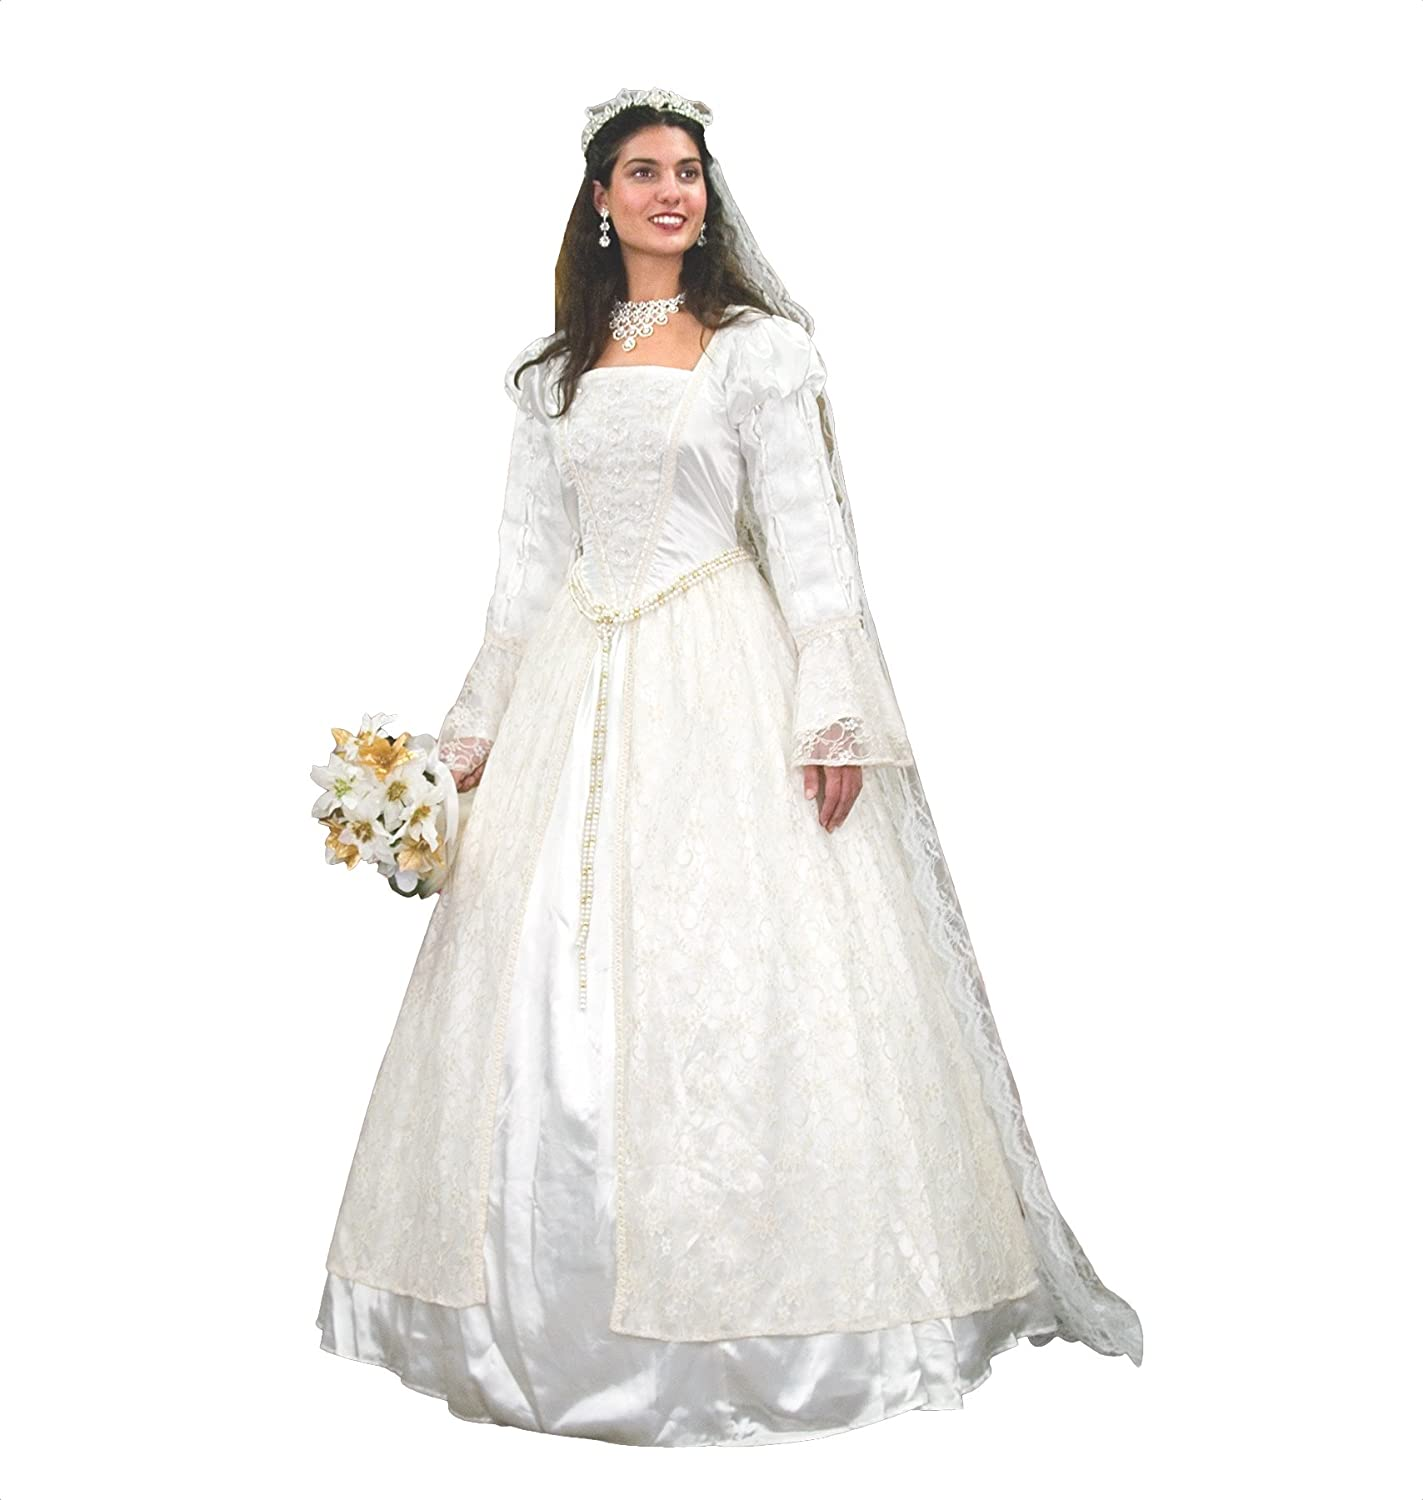 Renaissance Wedding Dress.Museum Replicas Renaissance Wedding Gown Veil W Flowers And Pearls